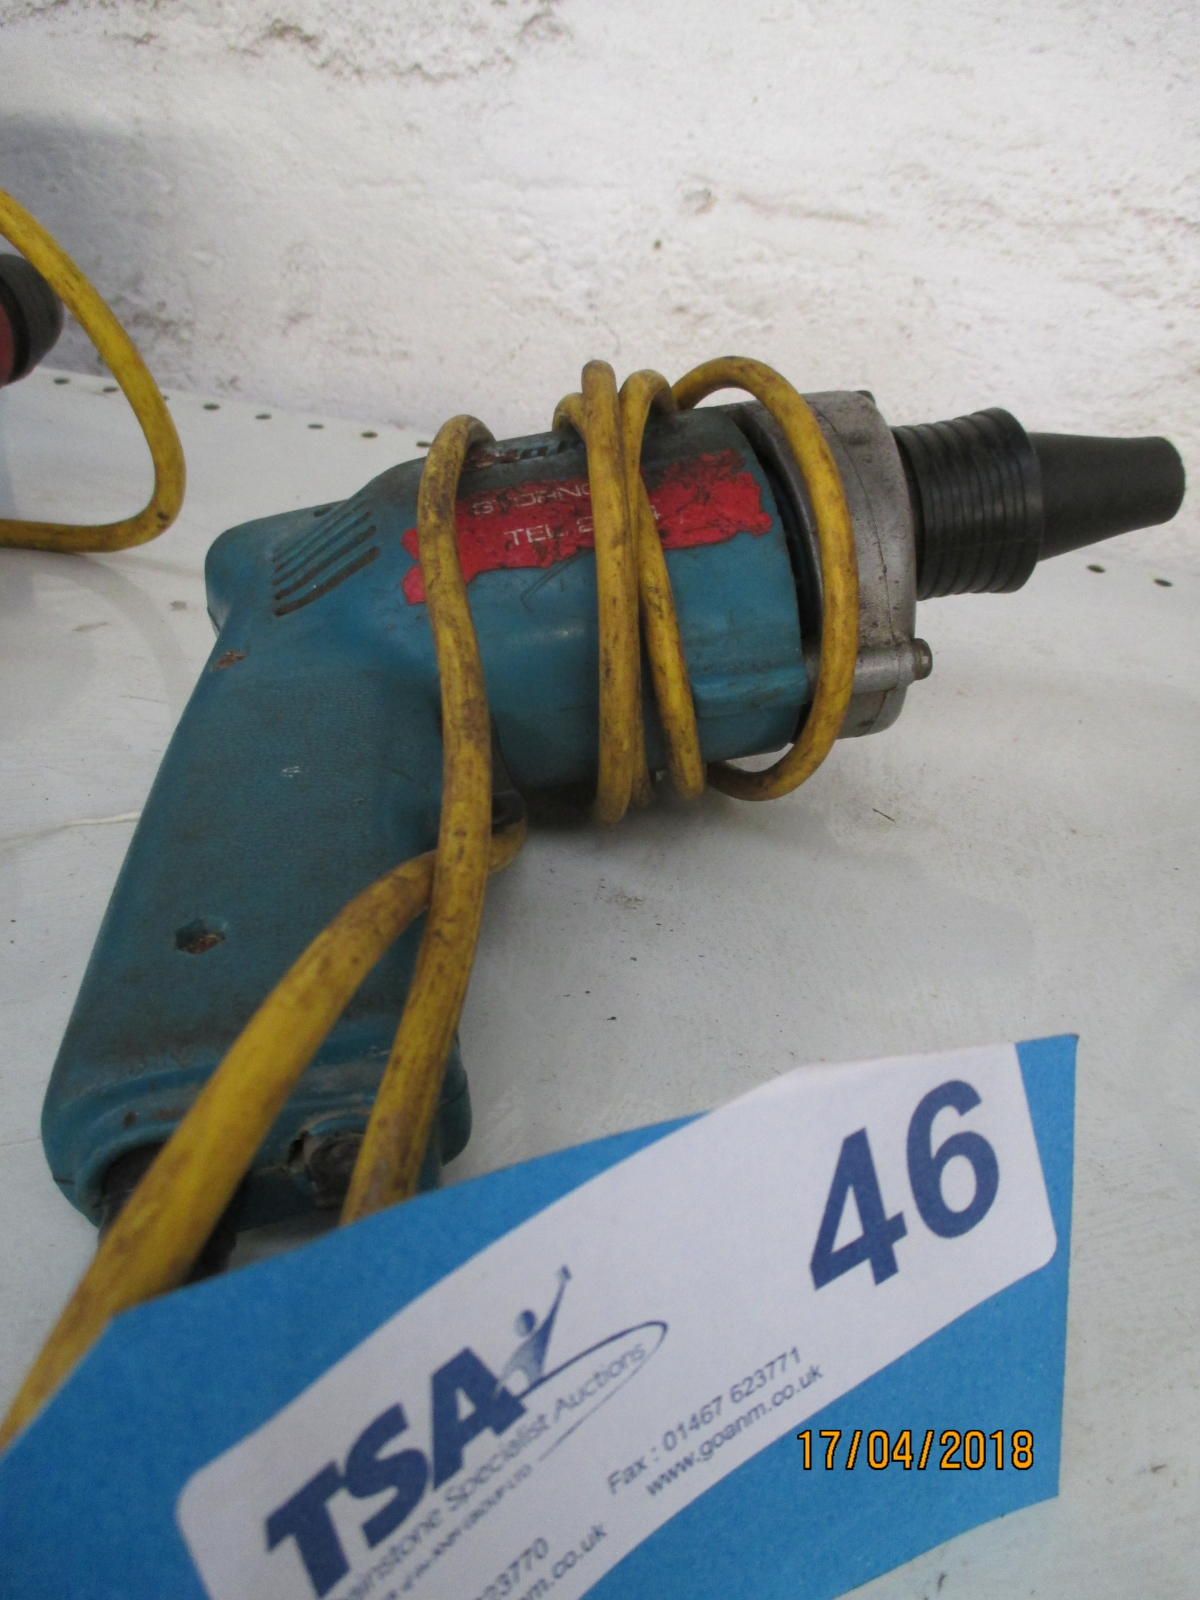 Lot 46 - 1 No. Makita Screwdriver 110v